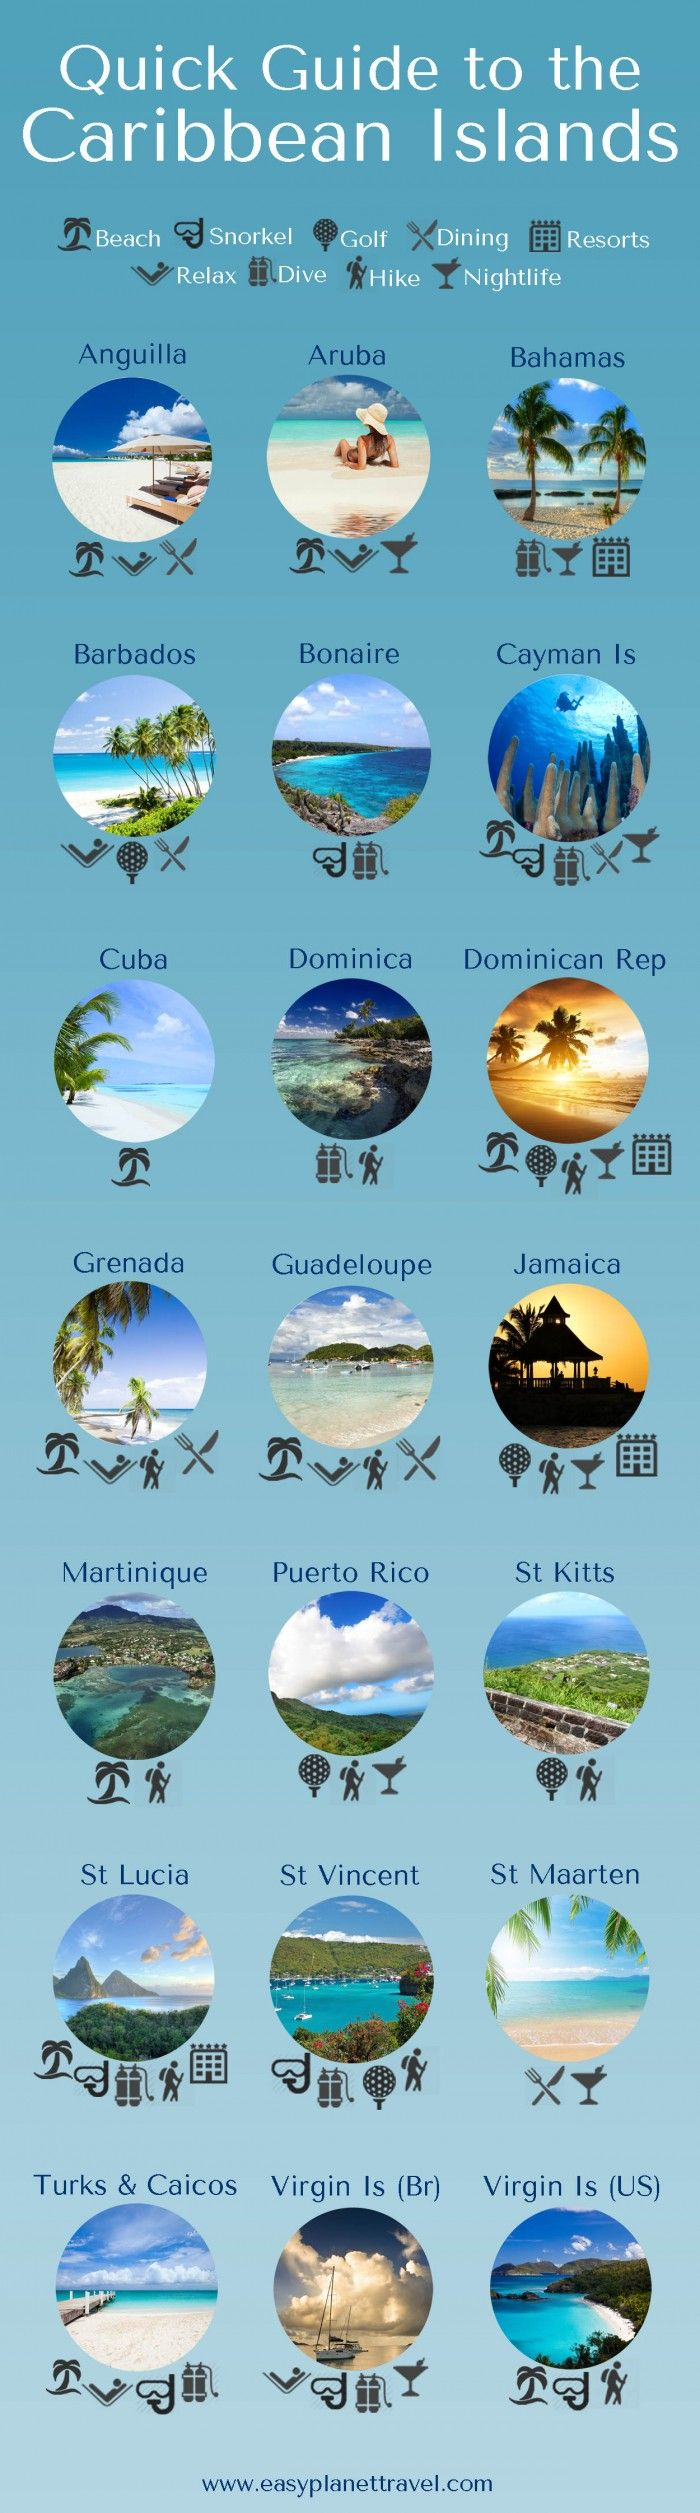 Can't decide which island to visit.  This info graphic might help.  Ready to plan your next trip? We are ready to assist. Www.speciallydesignedtravel.com